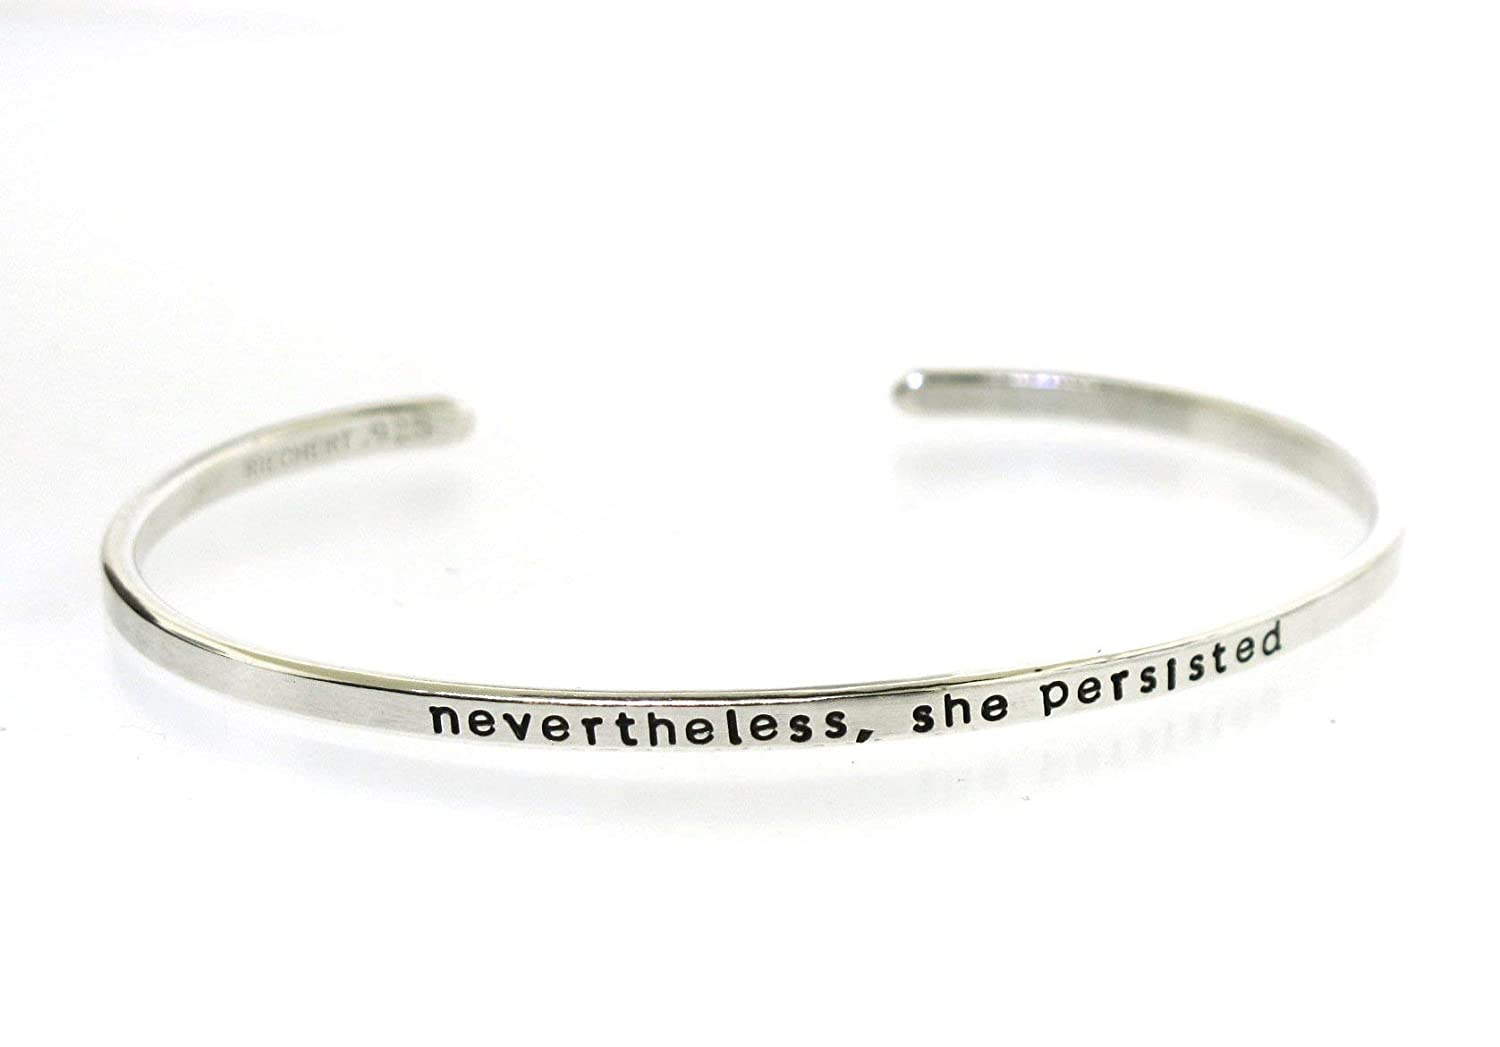 Nevertheless She Persisted. hand stamped NEW before selling At the price of surprise sterling silver b cuff